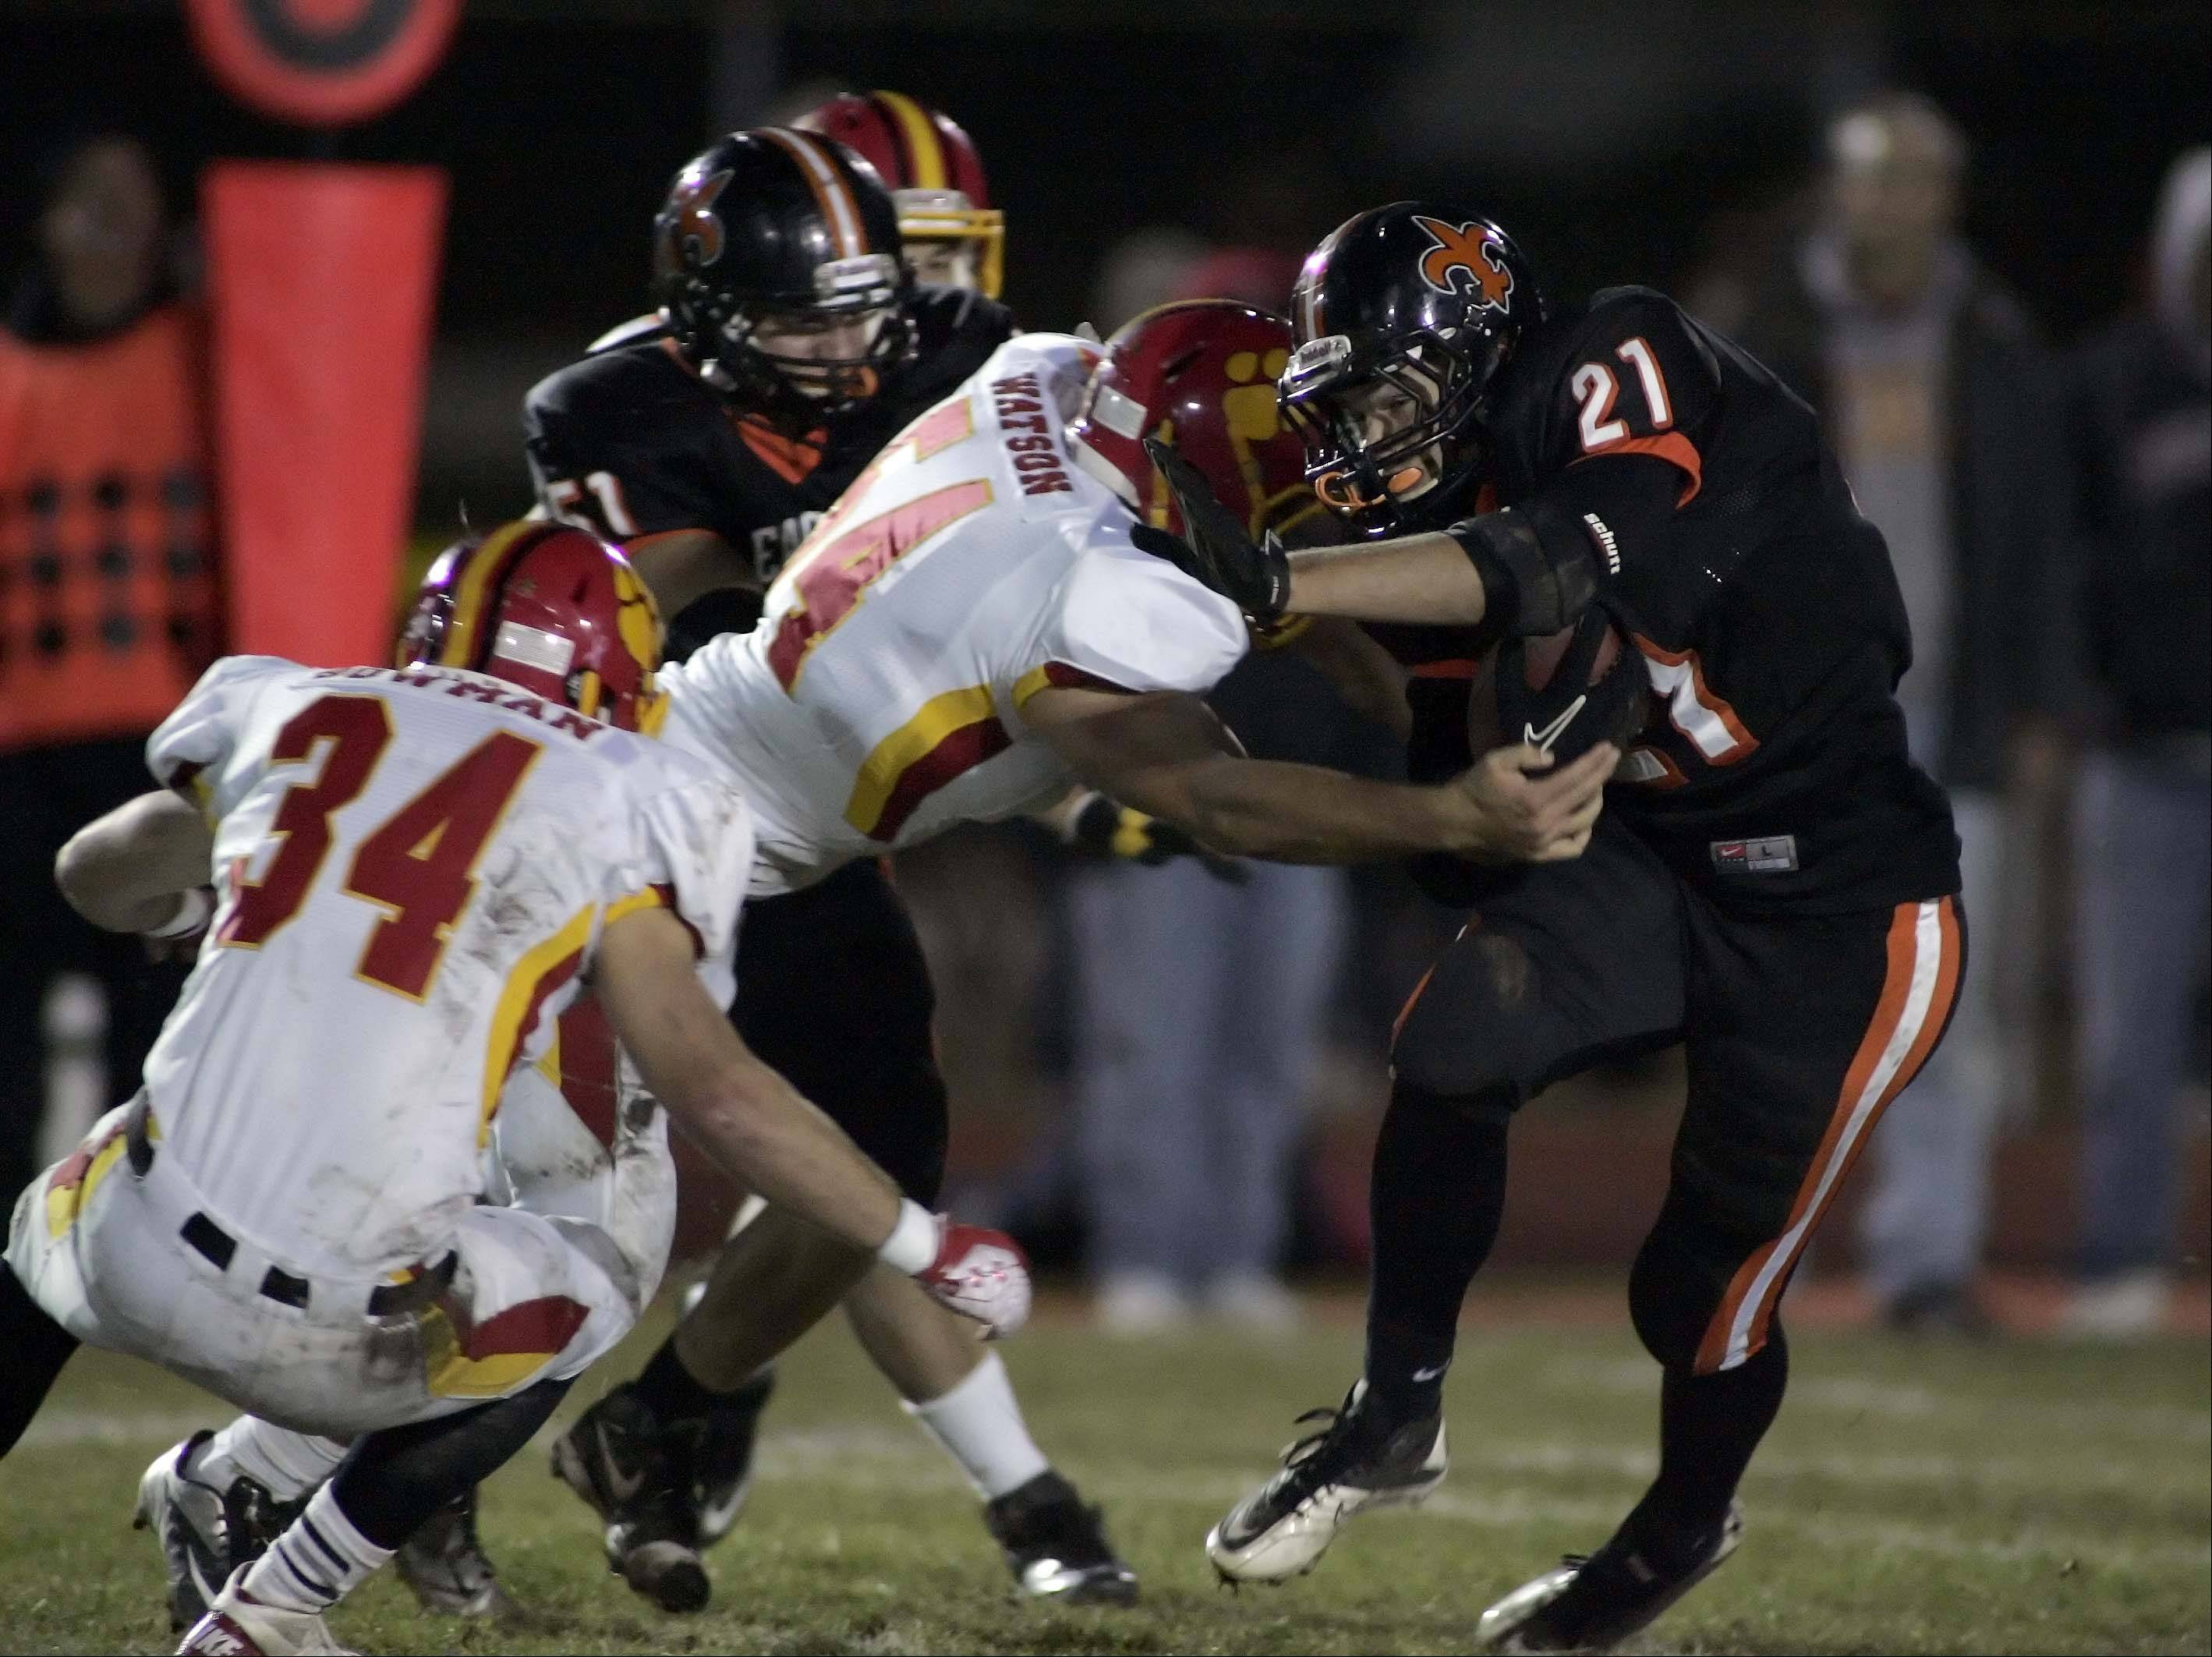 St. Charles East's Erik Anderson pushes past Batavia's Michael Watson .